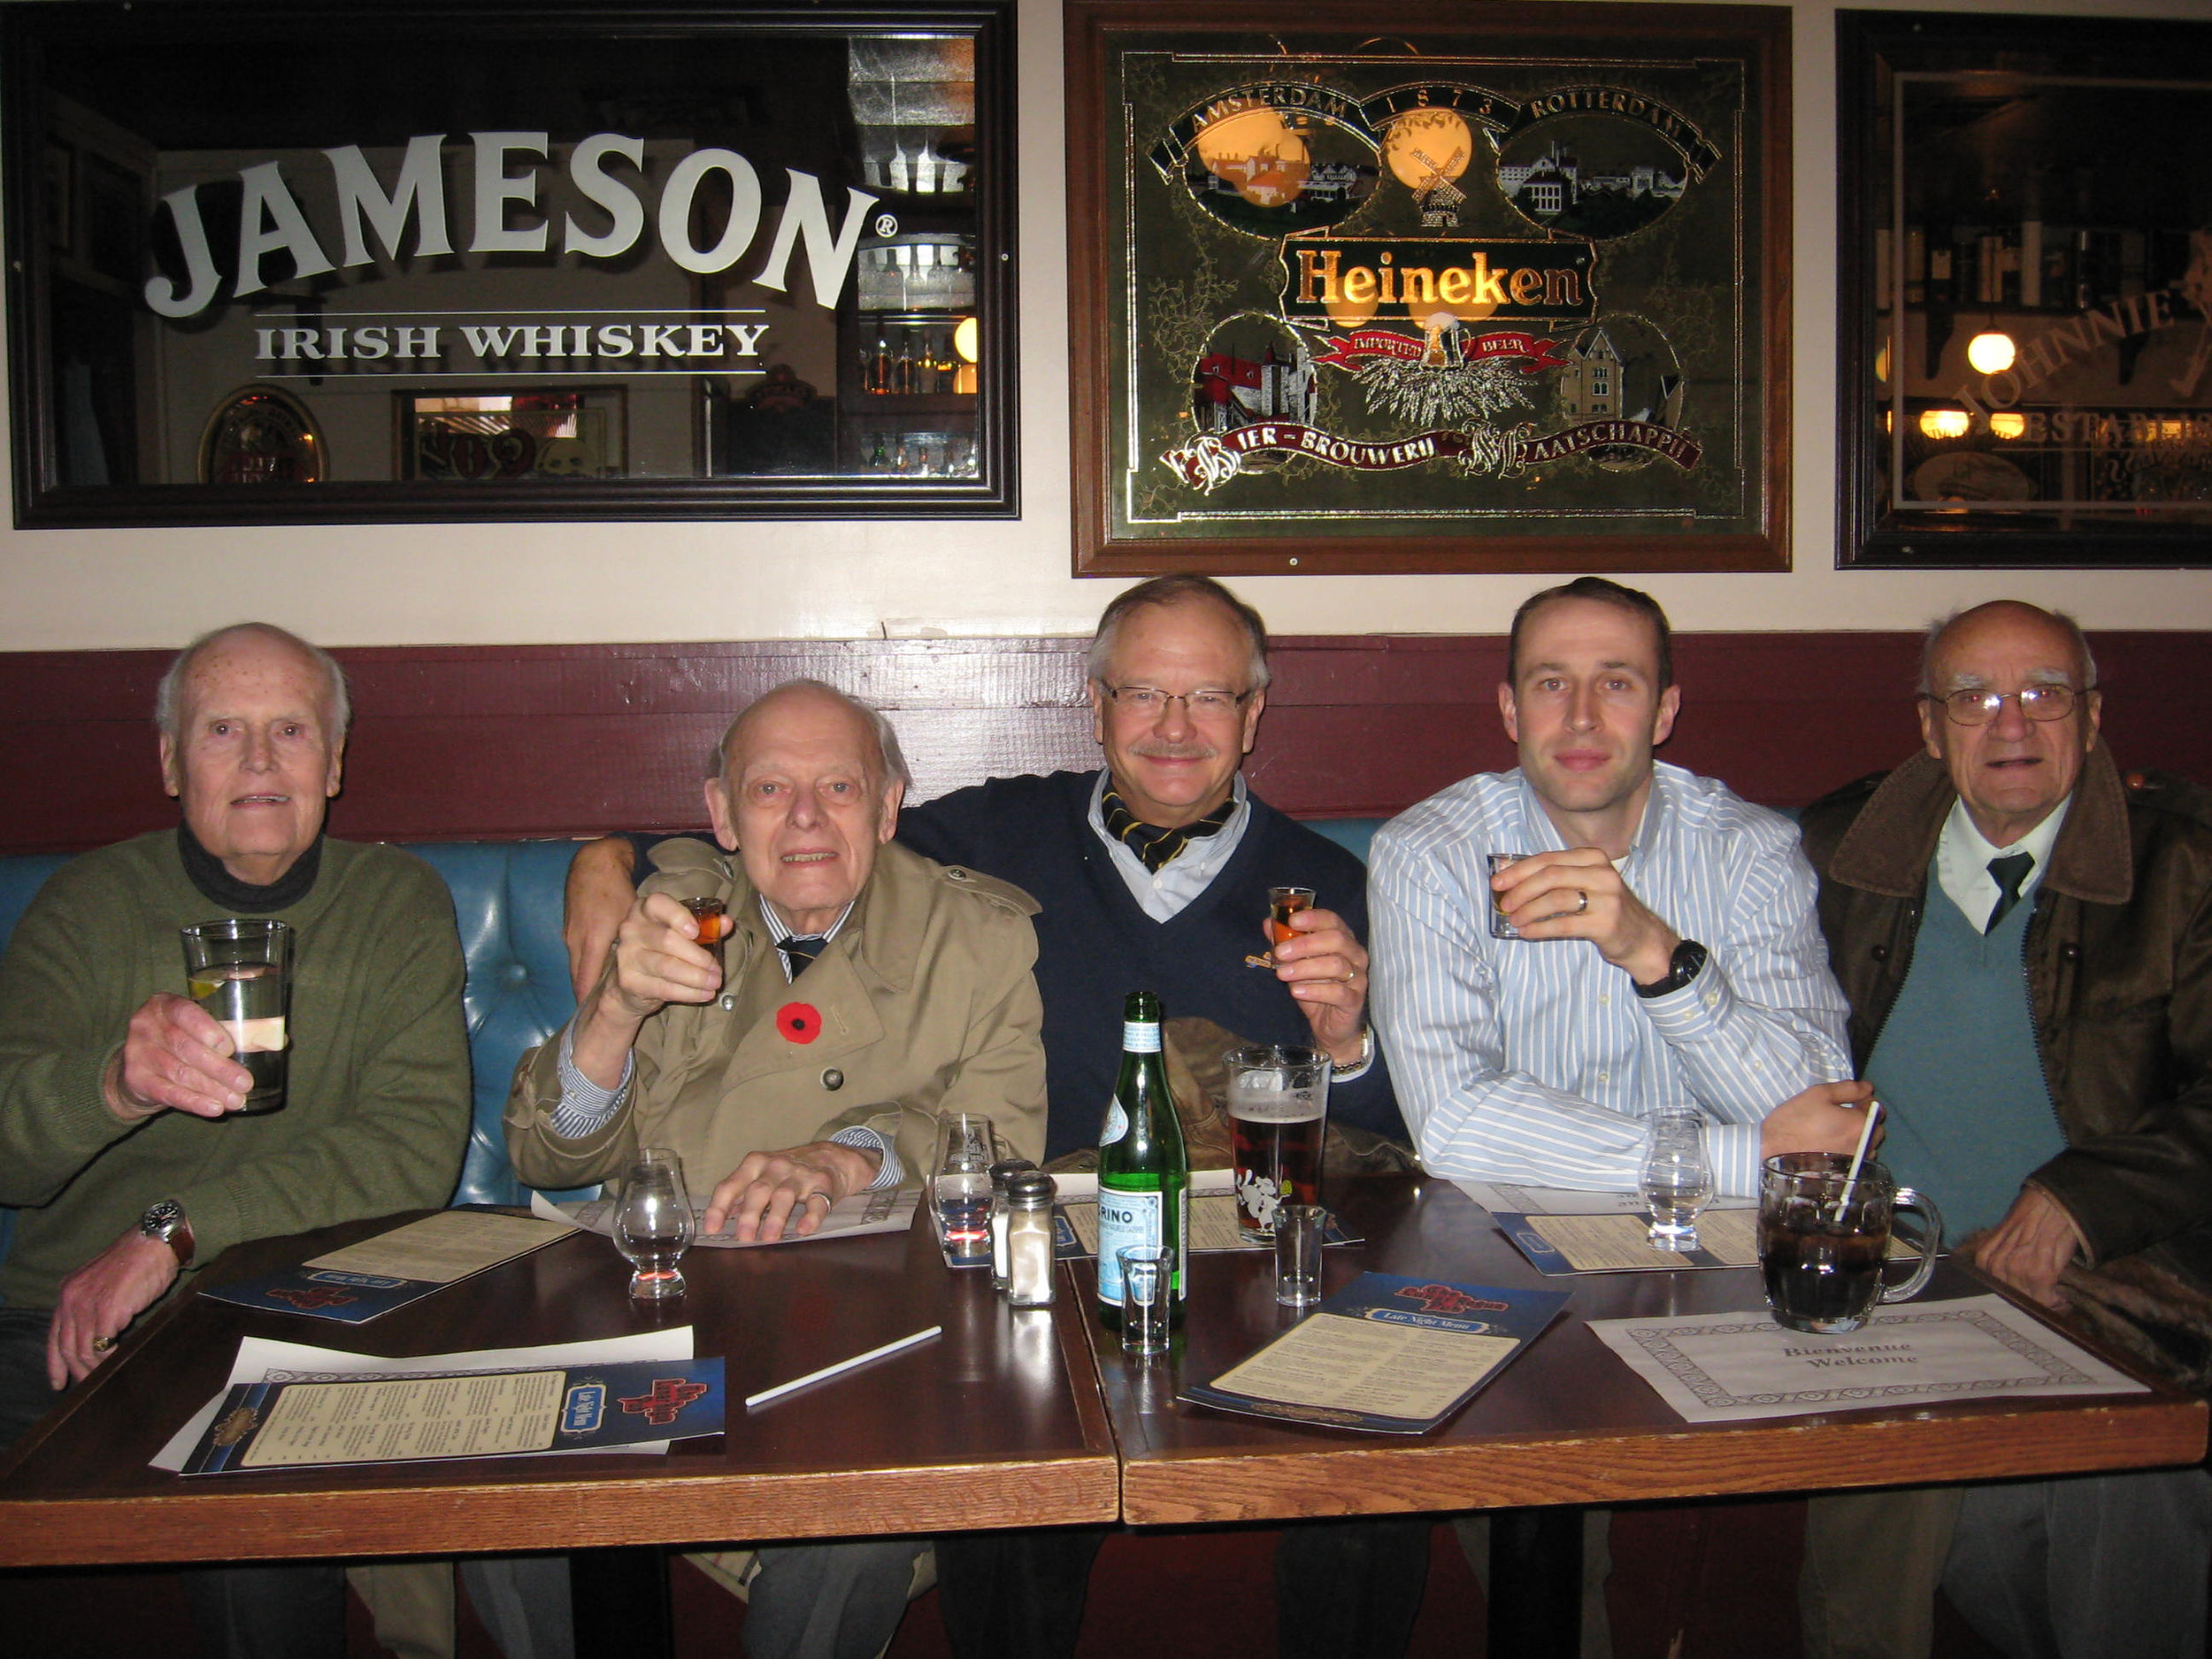 """On November 3, 2014, fellow Royal Canadians joined Ed in his annual toast to """"The Flying Deuce"""" at a Fredericton Scotch bar, following 2 RCR's ceremonies commemorating the Battle of the Song-gok Spur. From left to right: John Woods, Ed Mastronardi, Bob Near, Greg White, Red Butler."""